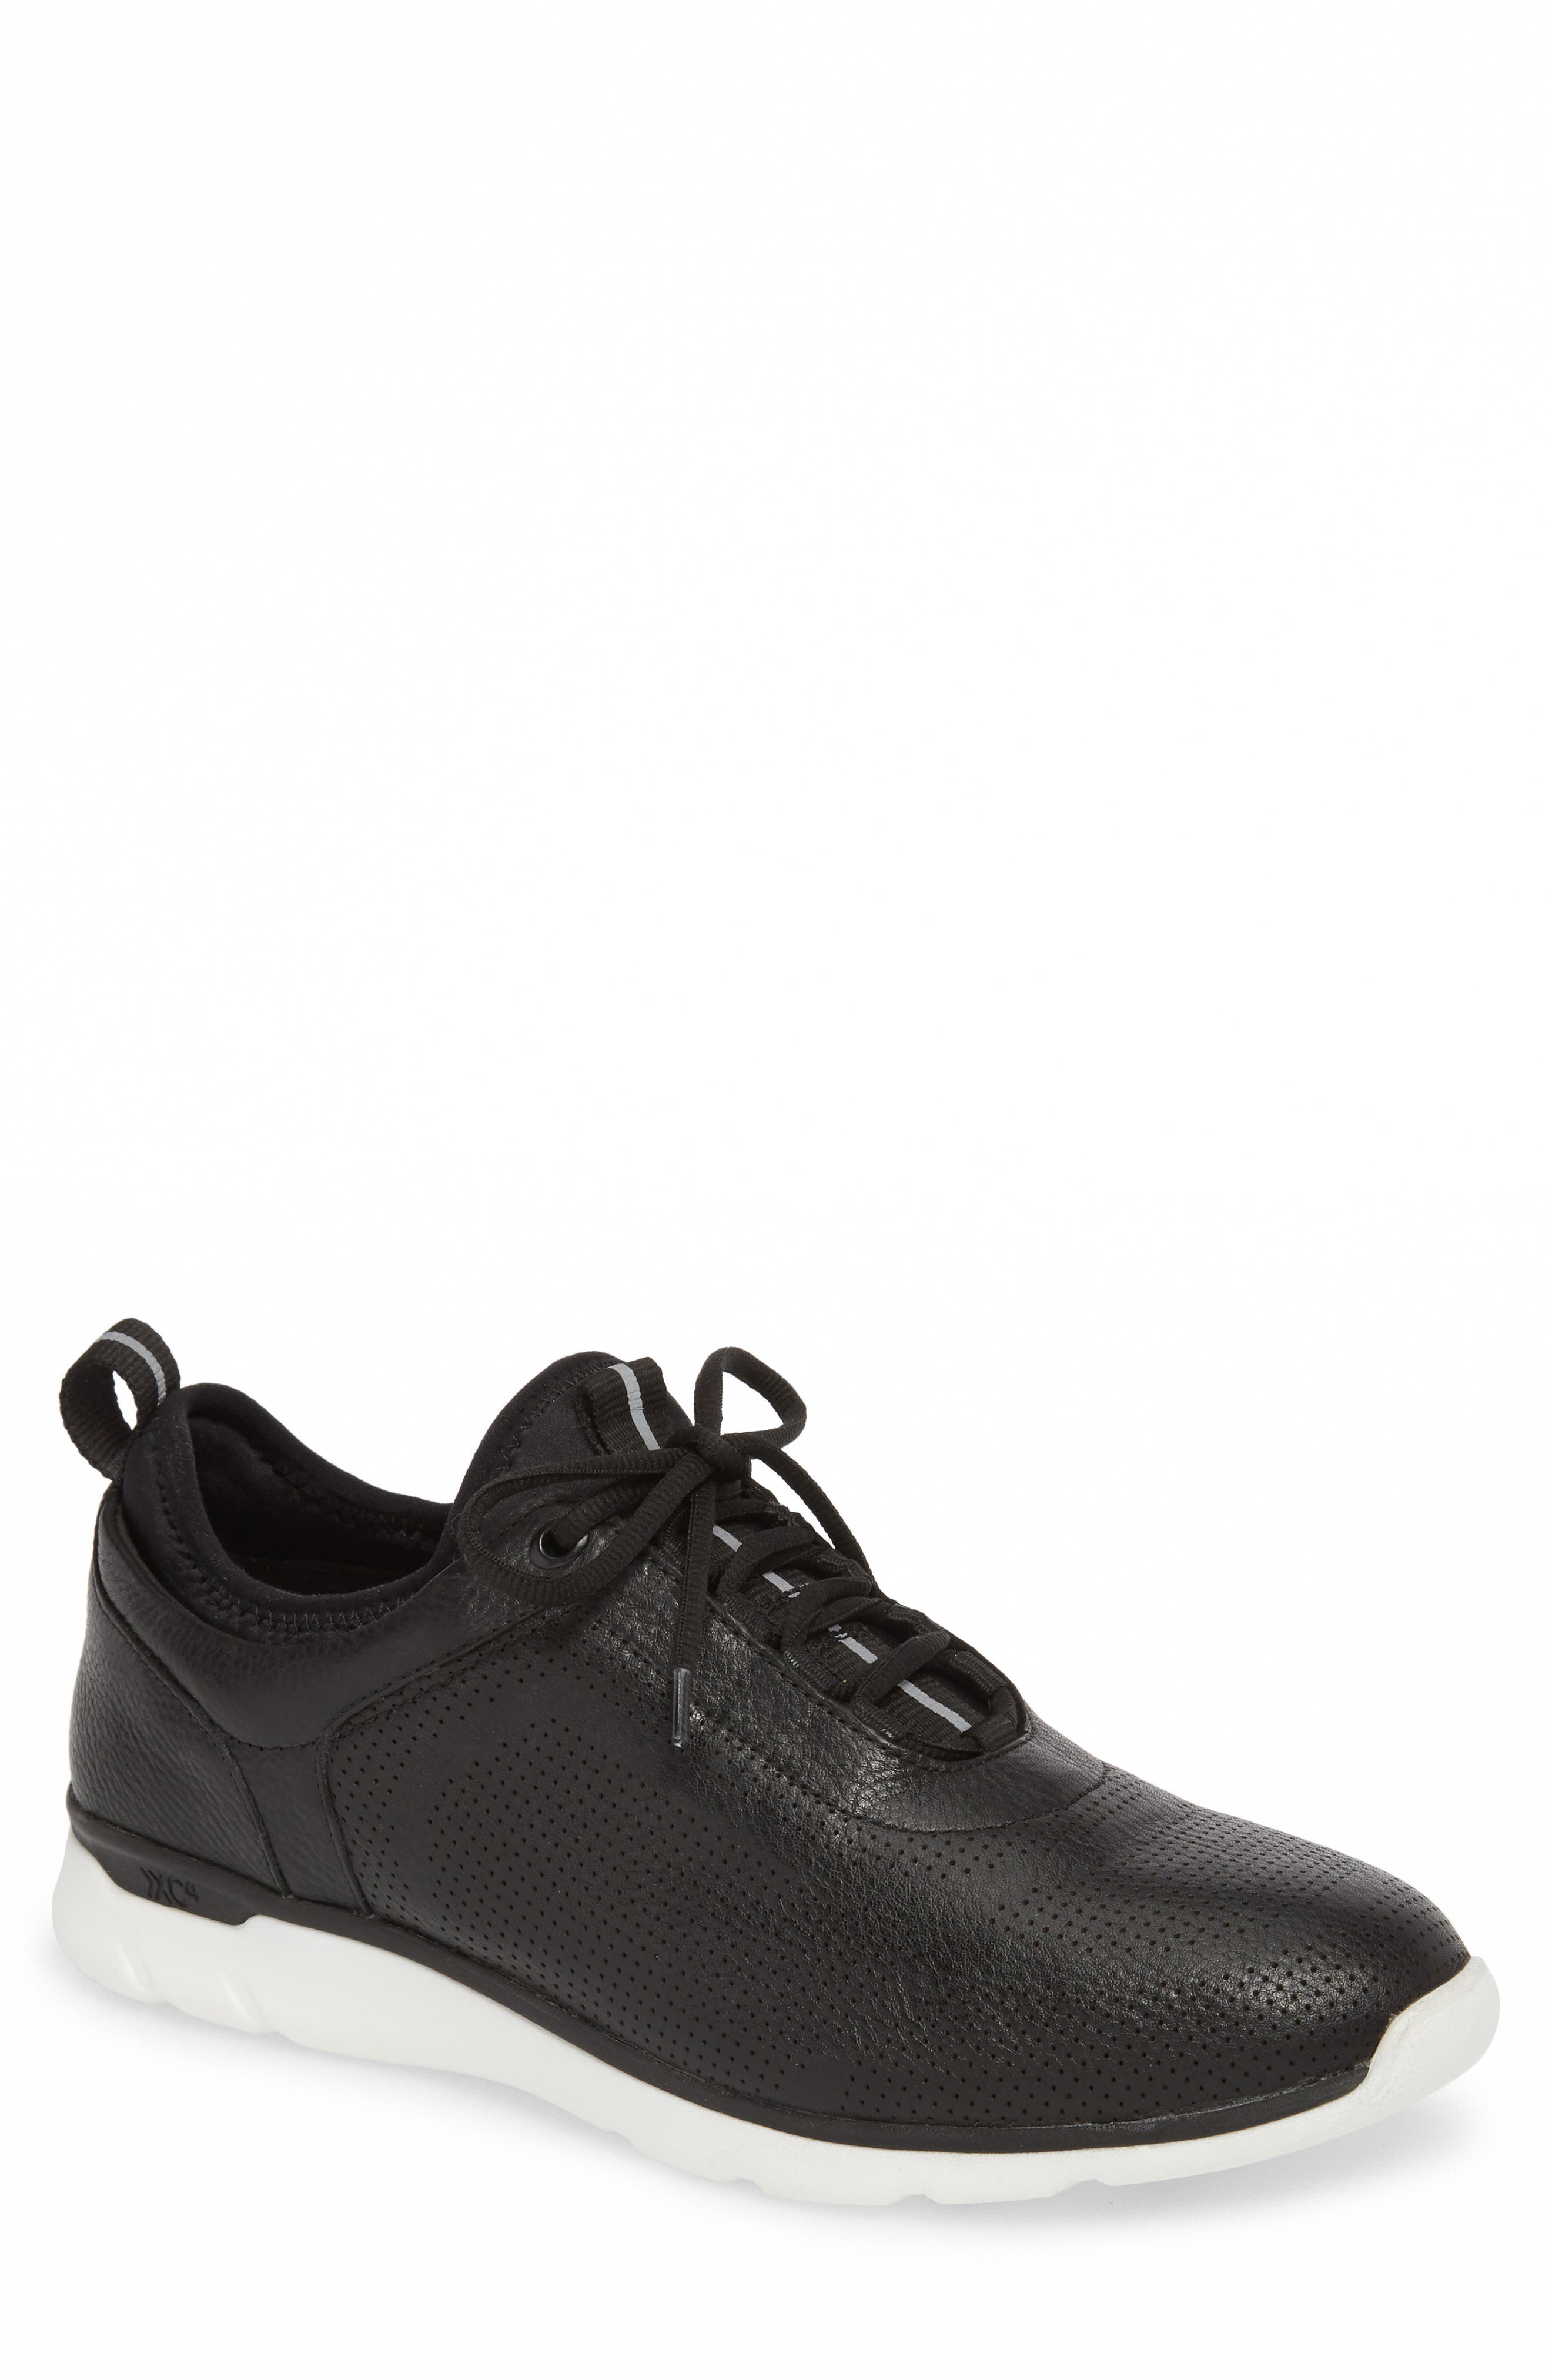 JOHNSTON & MURPHY Prentiss XC4<sup>®</sup> Waterproof Sneaker, Main, color, BLACK LEATHER